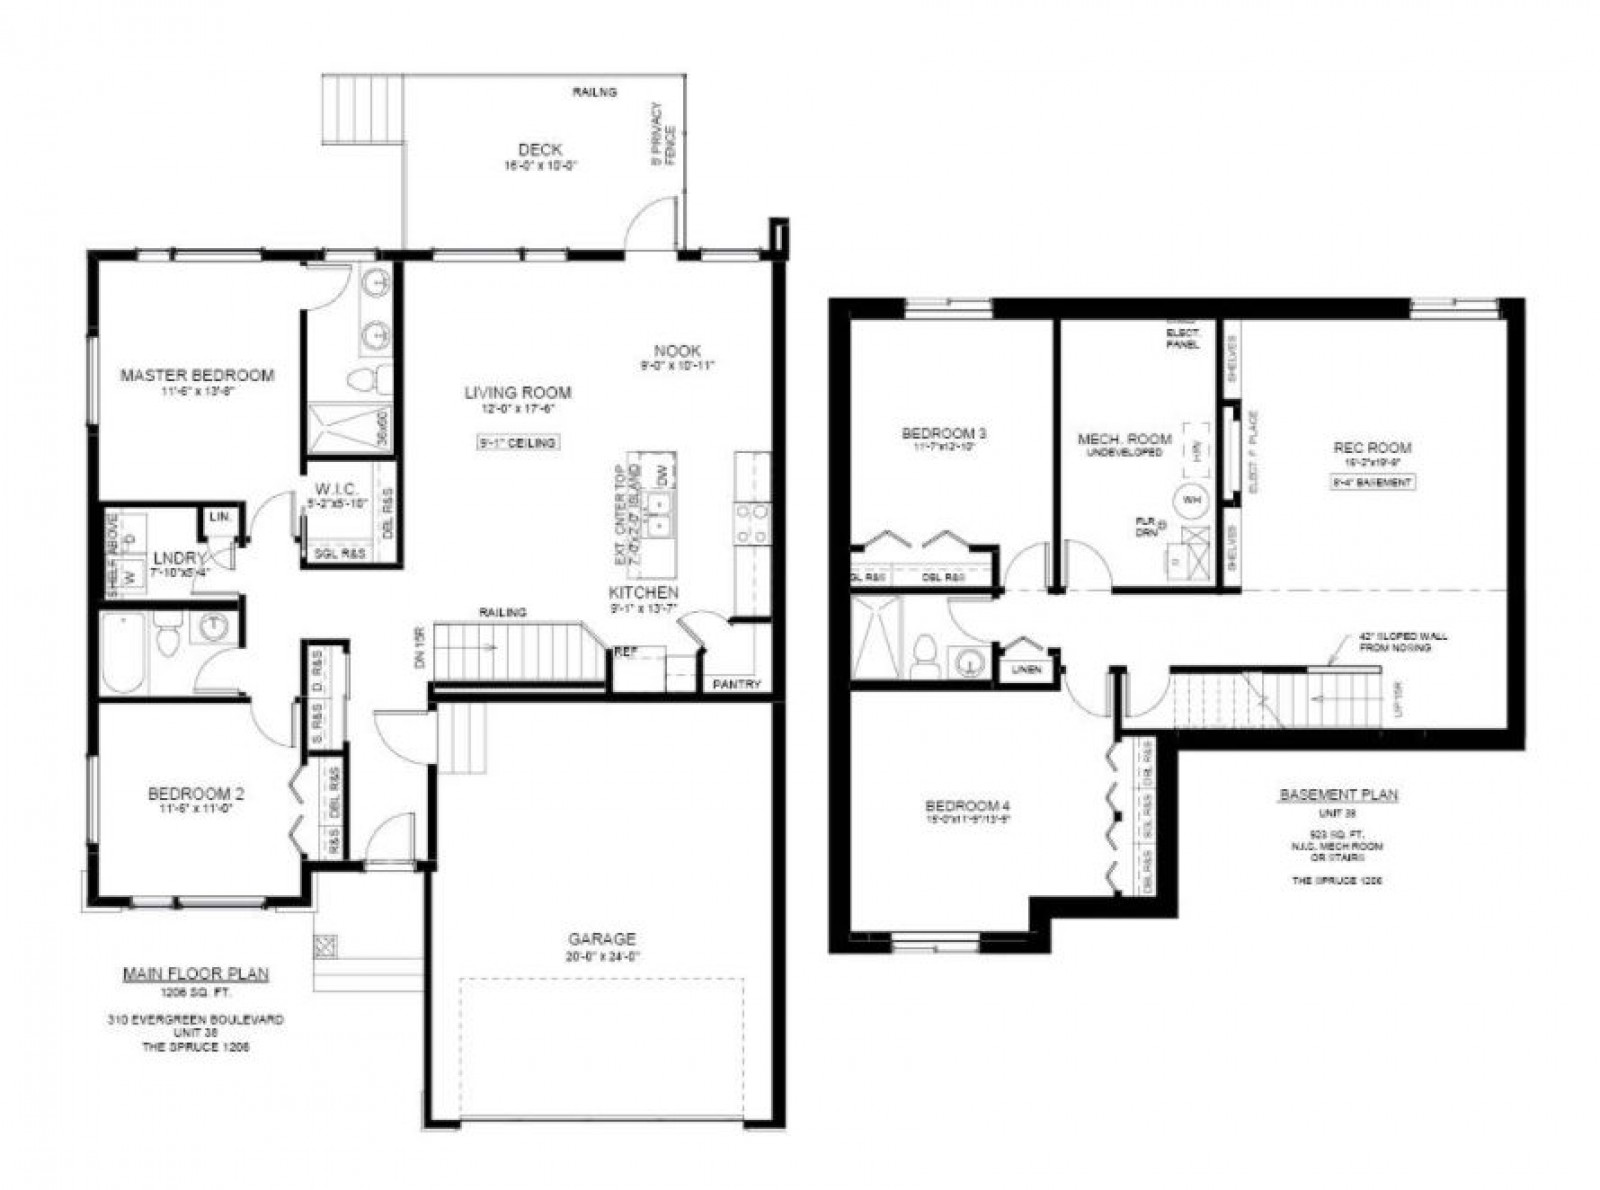 #38 – 310 Evergreen Boulevard Floor Plan